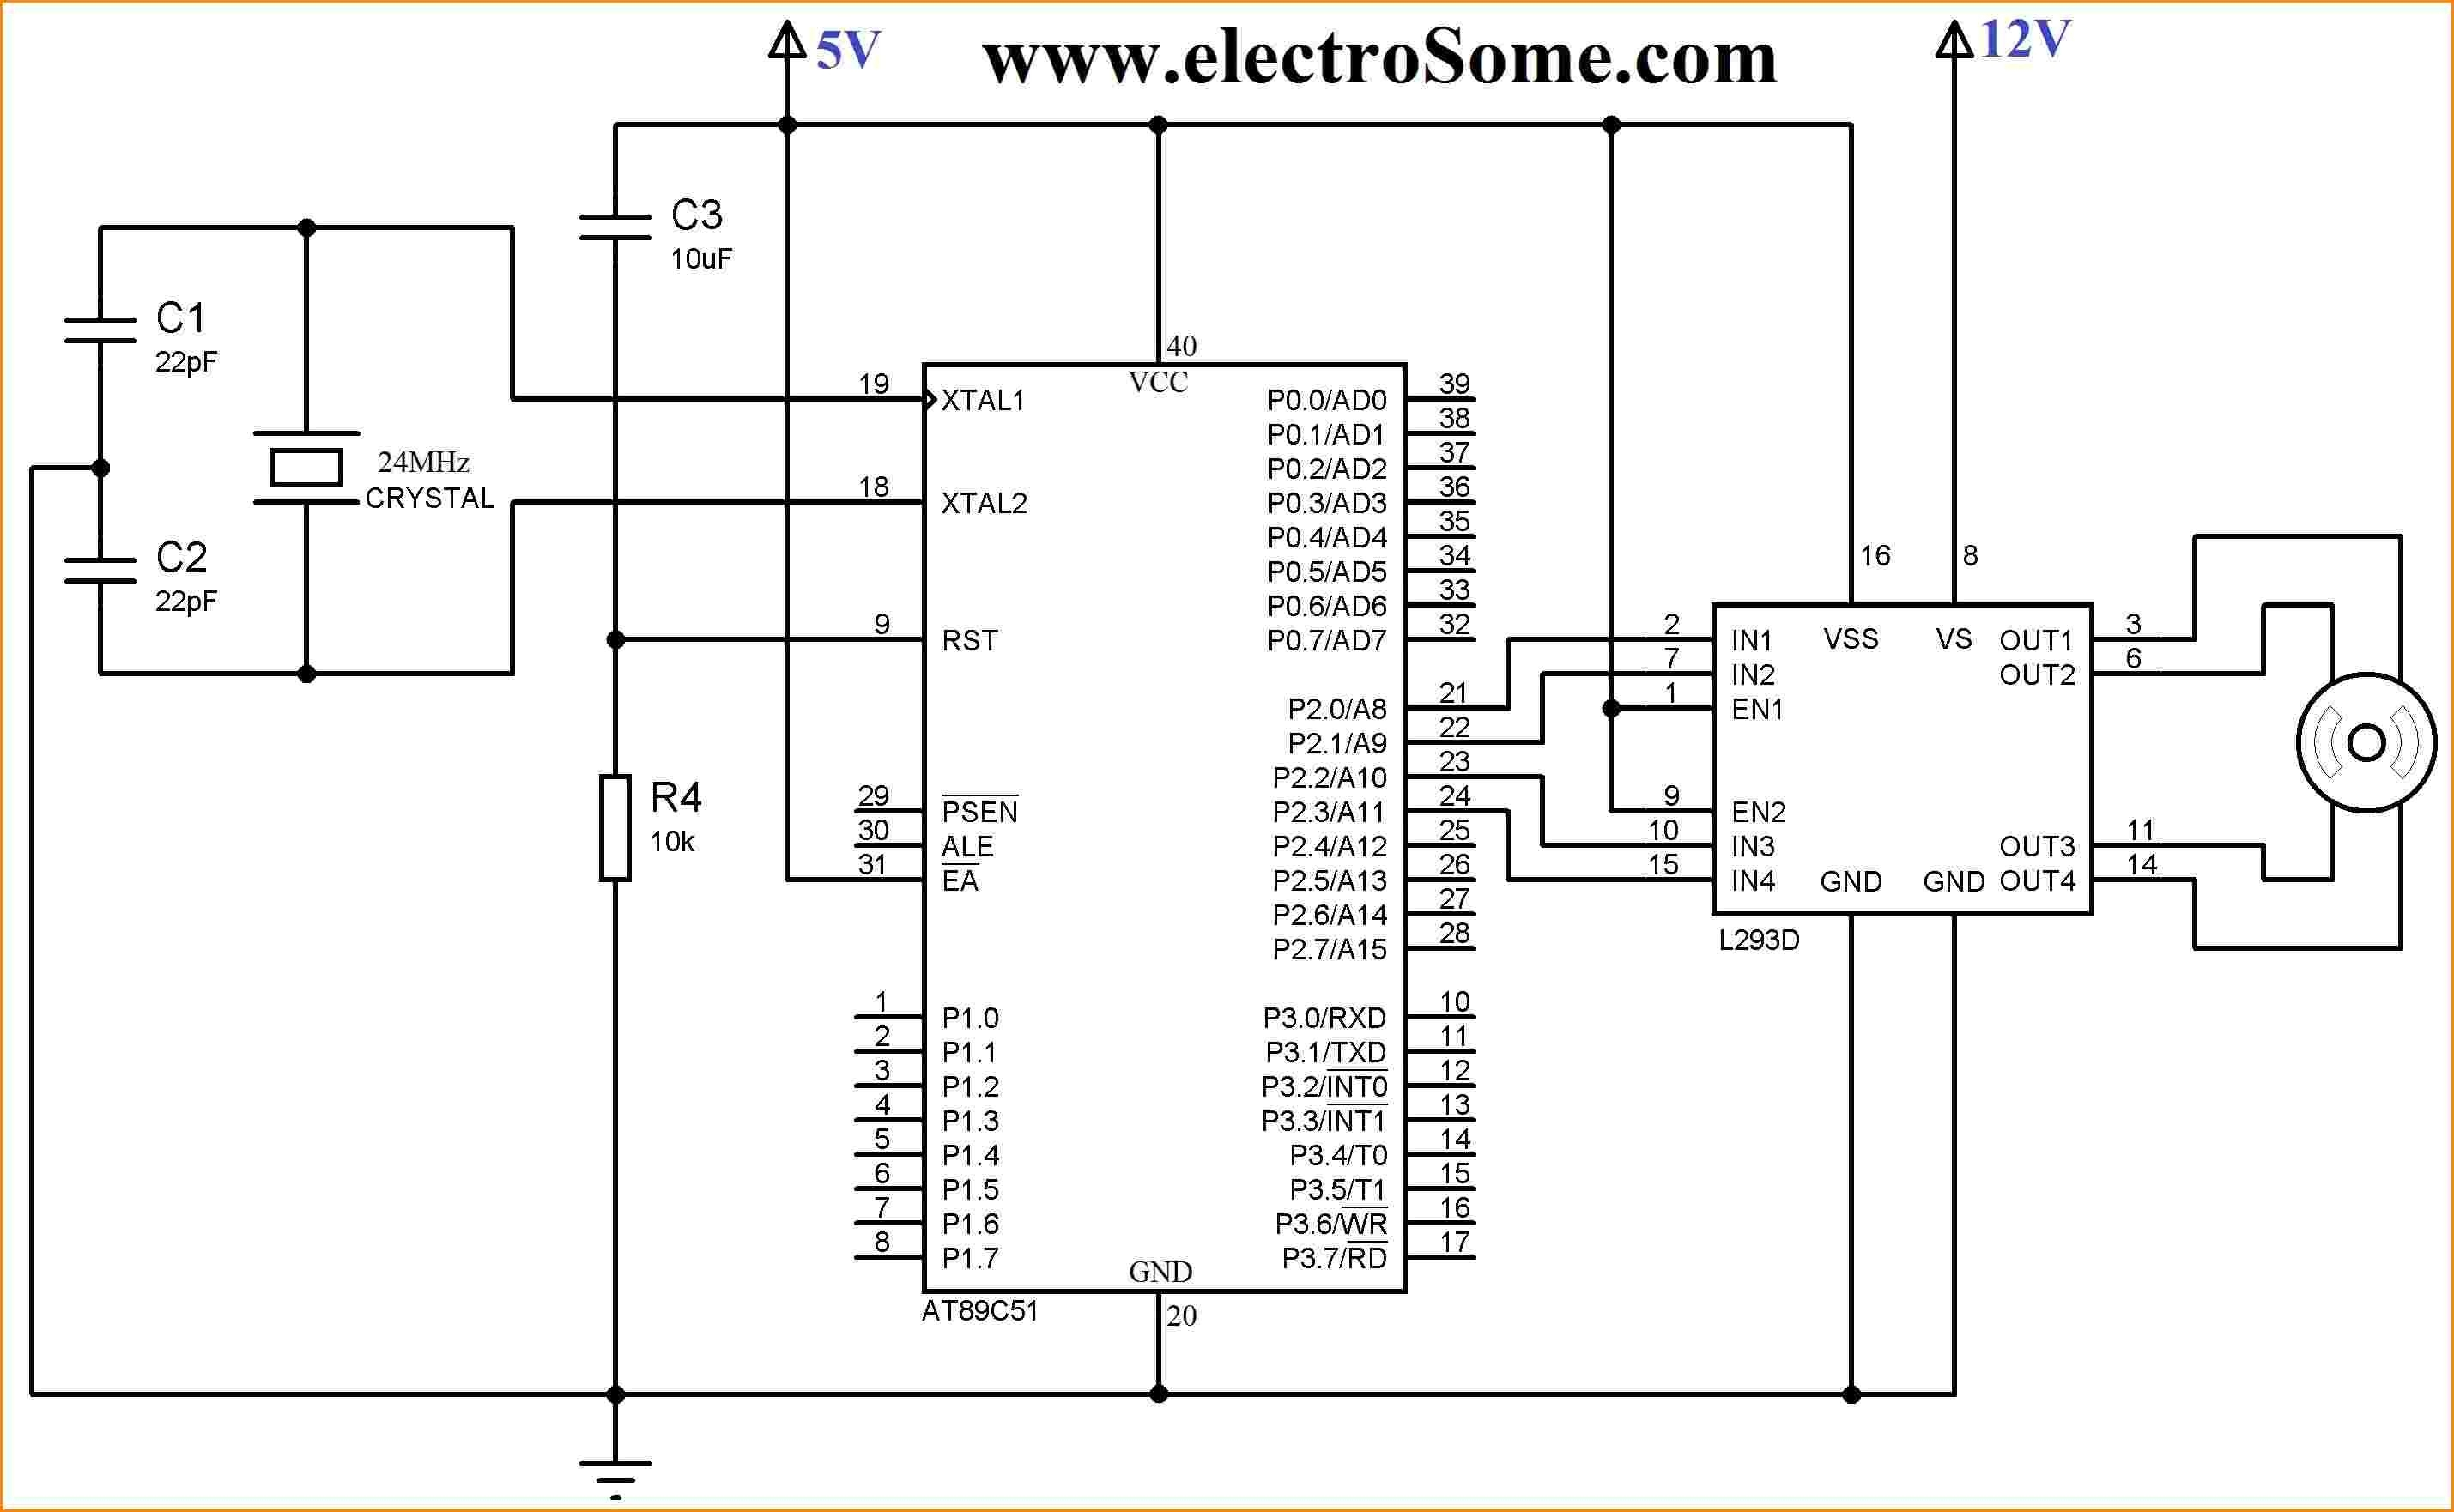 swann wireless camera wiring diagram Collection-Swann Security Camera N3960 Wiring Diagram Swann Security Camera N3960 Wiring Diagram Collection Security Camera 14-m